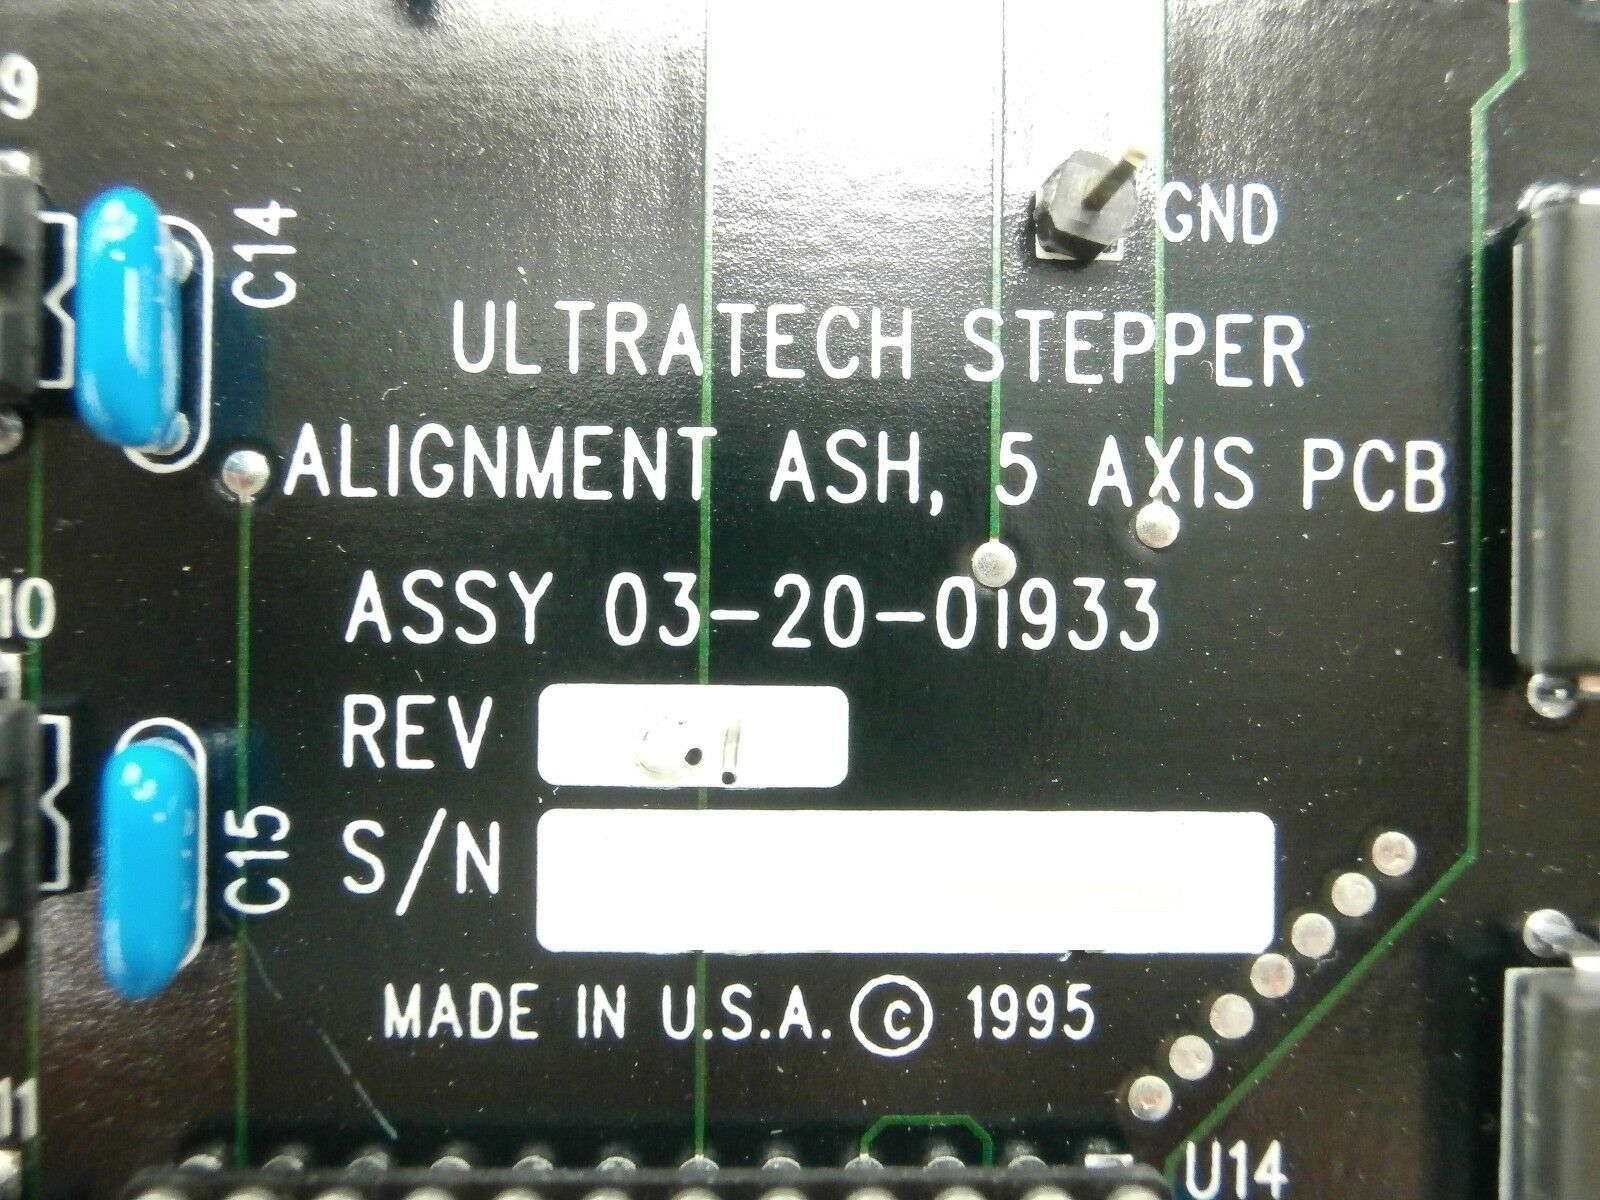 Ultratech Stepper 03-20-01933 5 Axis ASH Alignment Board PCB Titan Used Working